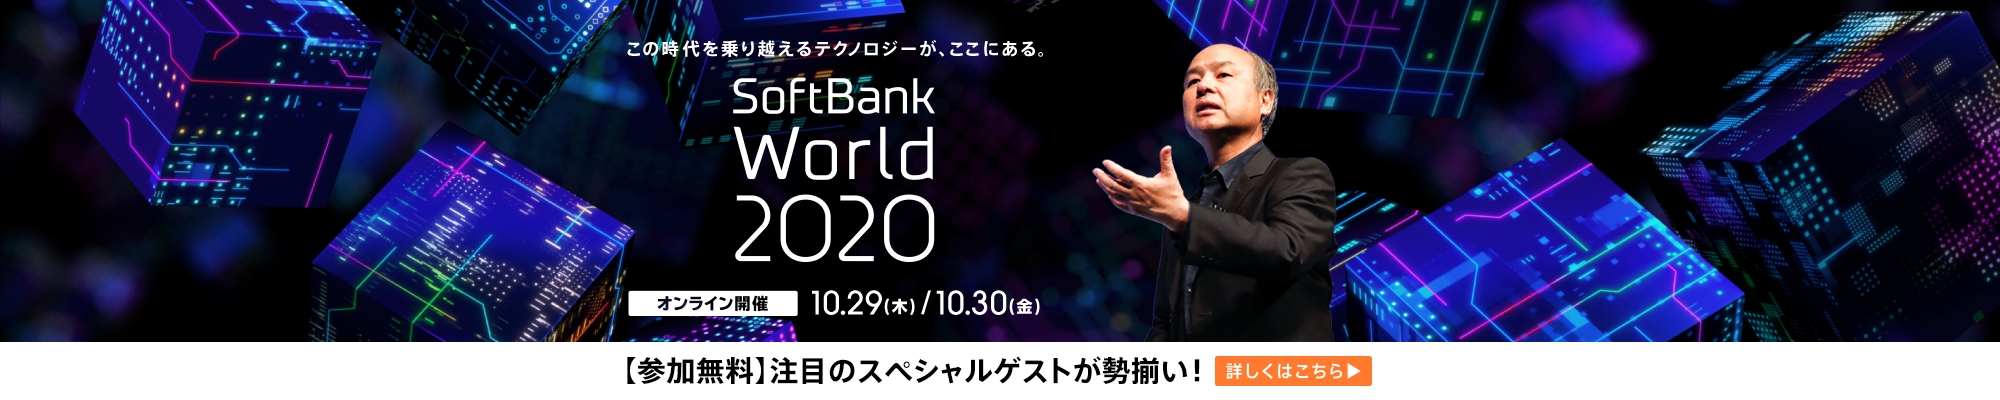 SoftBank World 2020